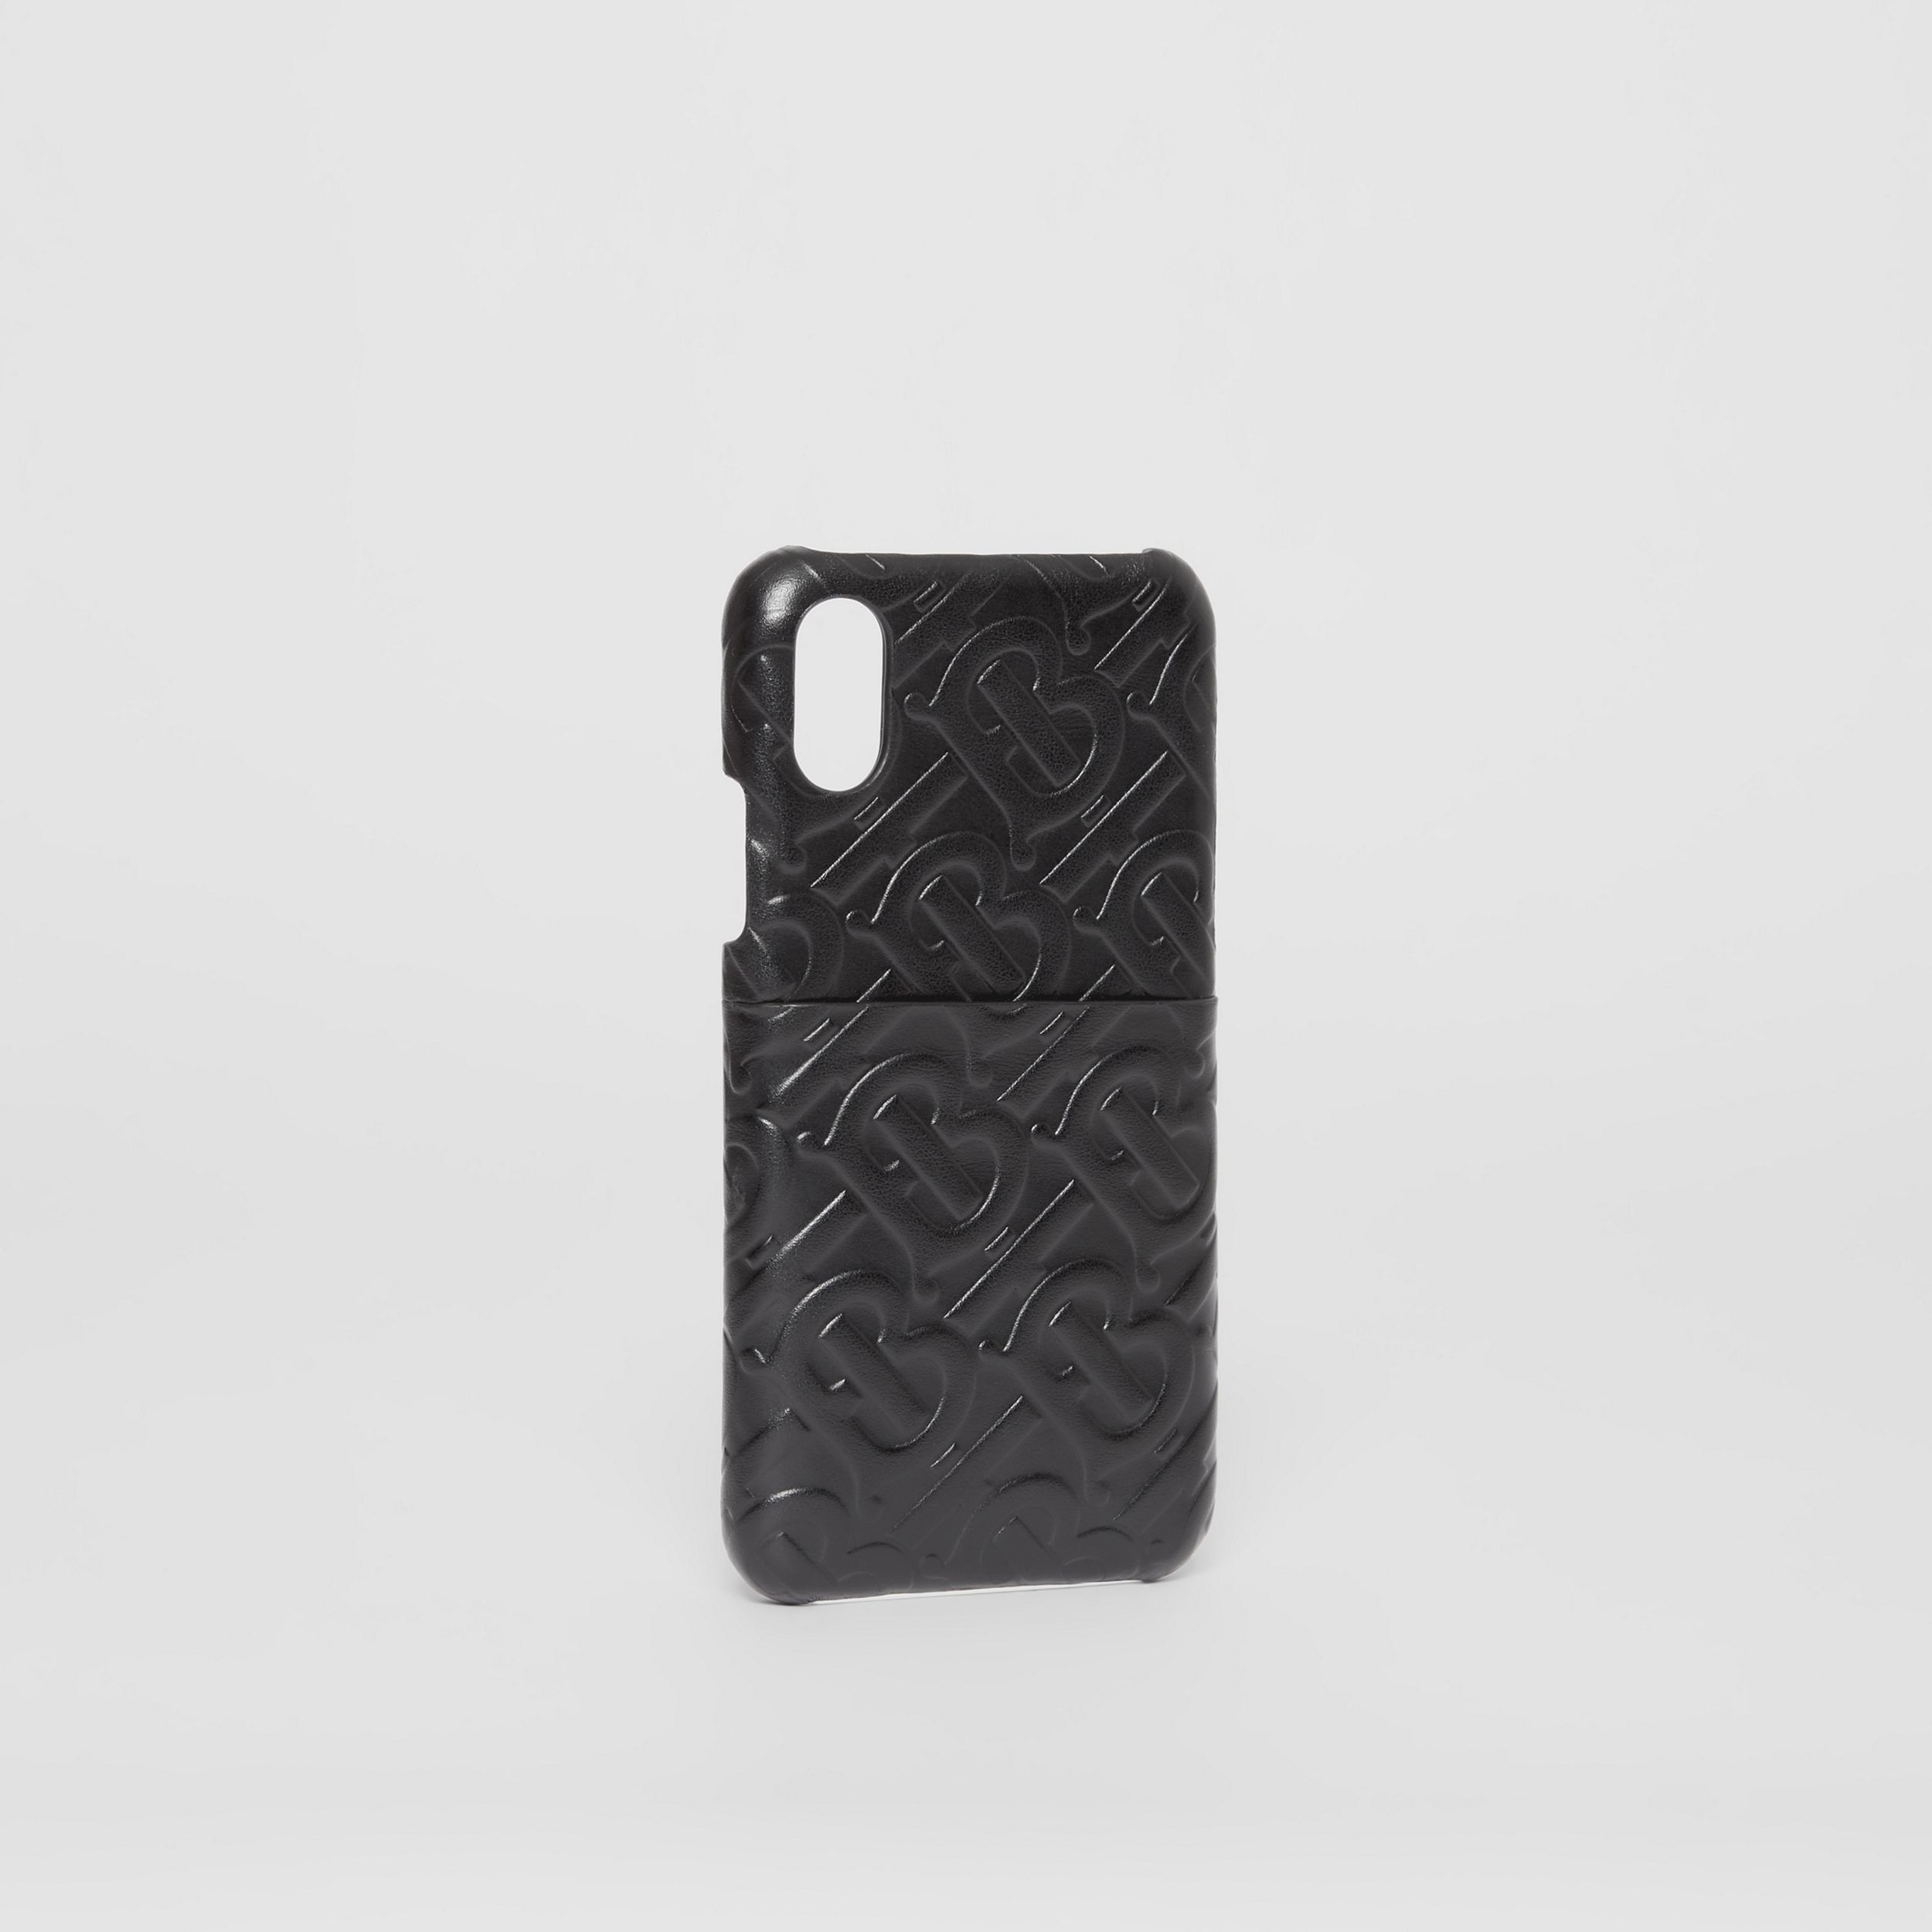 Monogram Leather iPhone X/XS Case in Black | Burberry United Kingdom - 3